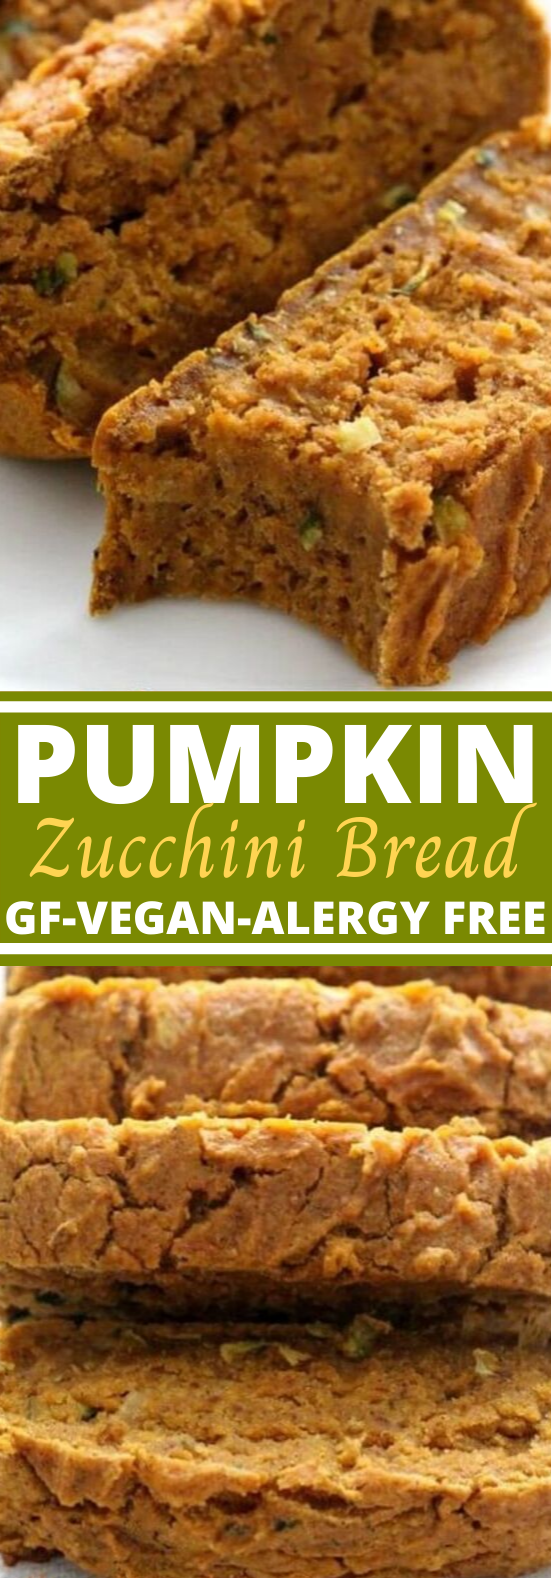 Gluten-Free Pumpkin Zucchini Bread (Vegan, Allergy-Free) #vegan #breakfast #healthy #bread #recipes